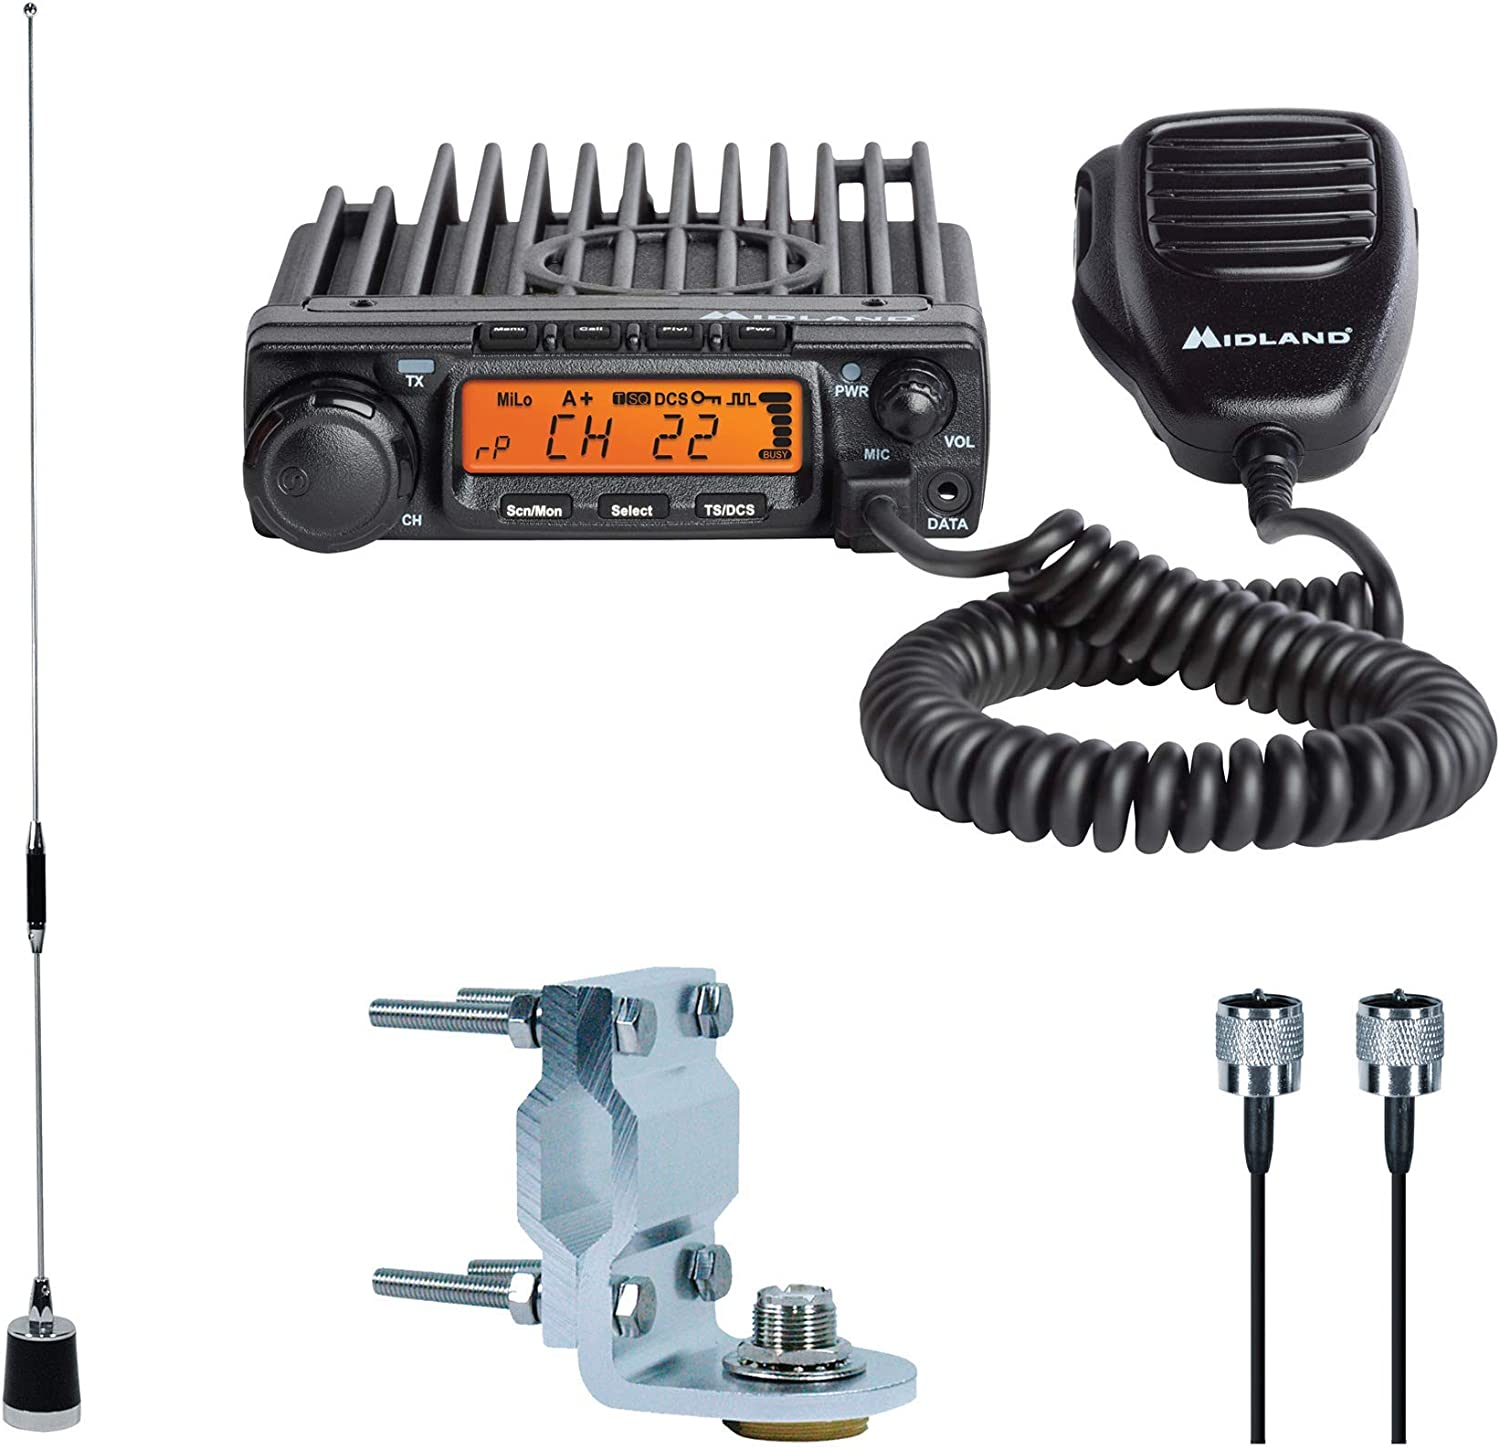 Midland – MXT400VP3, MicroMobile Bundle – MXT400 Two-Way Radio w 8 Repeater Channels, 142 Privacy Codes 6dB Gain Antenna w Antenna Mounting Bracket, MXTA8 6M Antenna Cord Single Pack Black